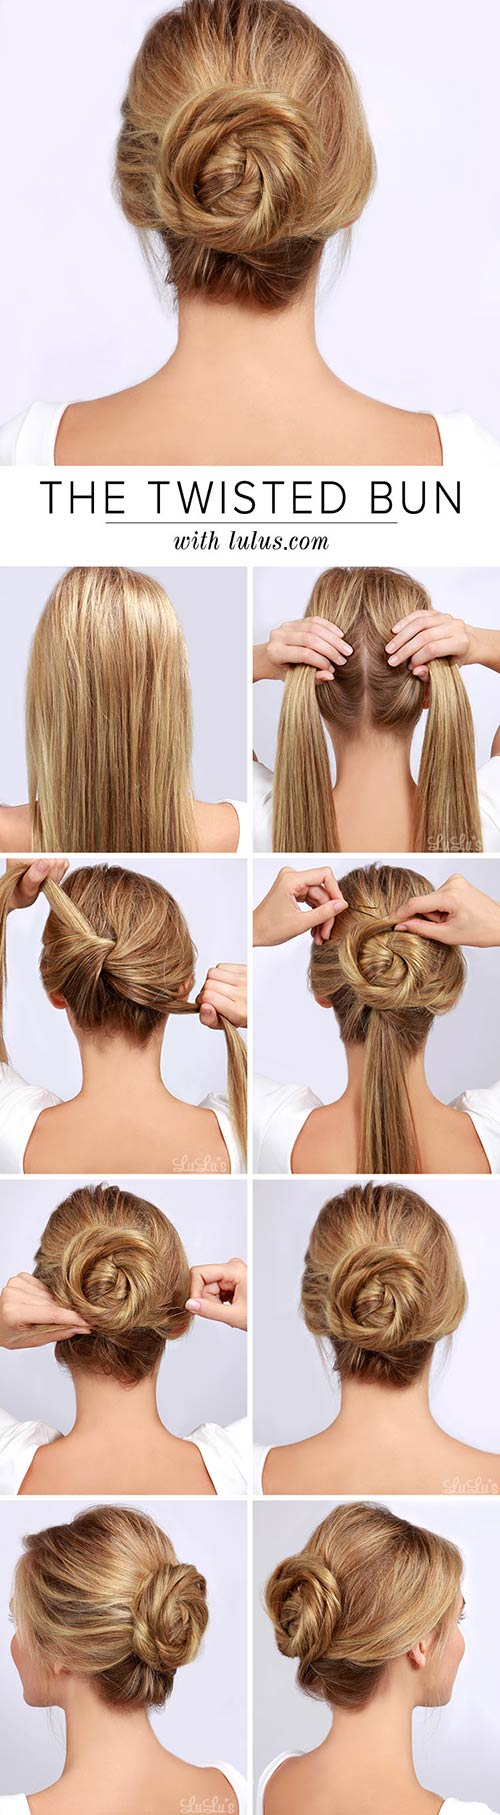 20 Awesome Hairstyles For Girls With Long Hair. 1. Twisted Bun